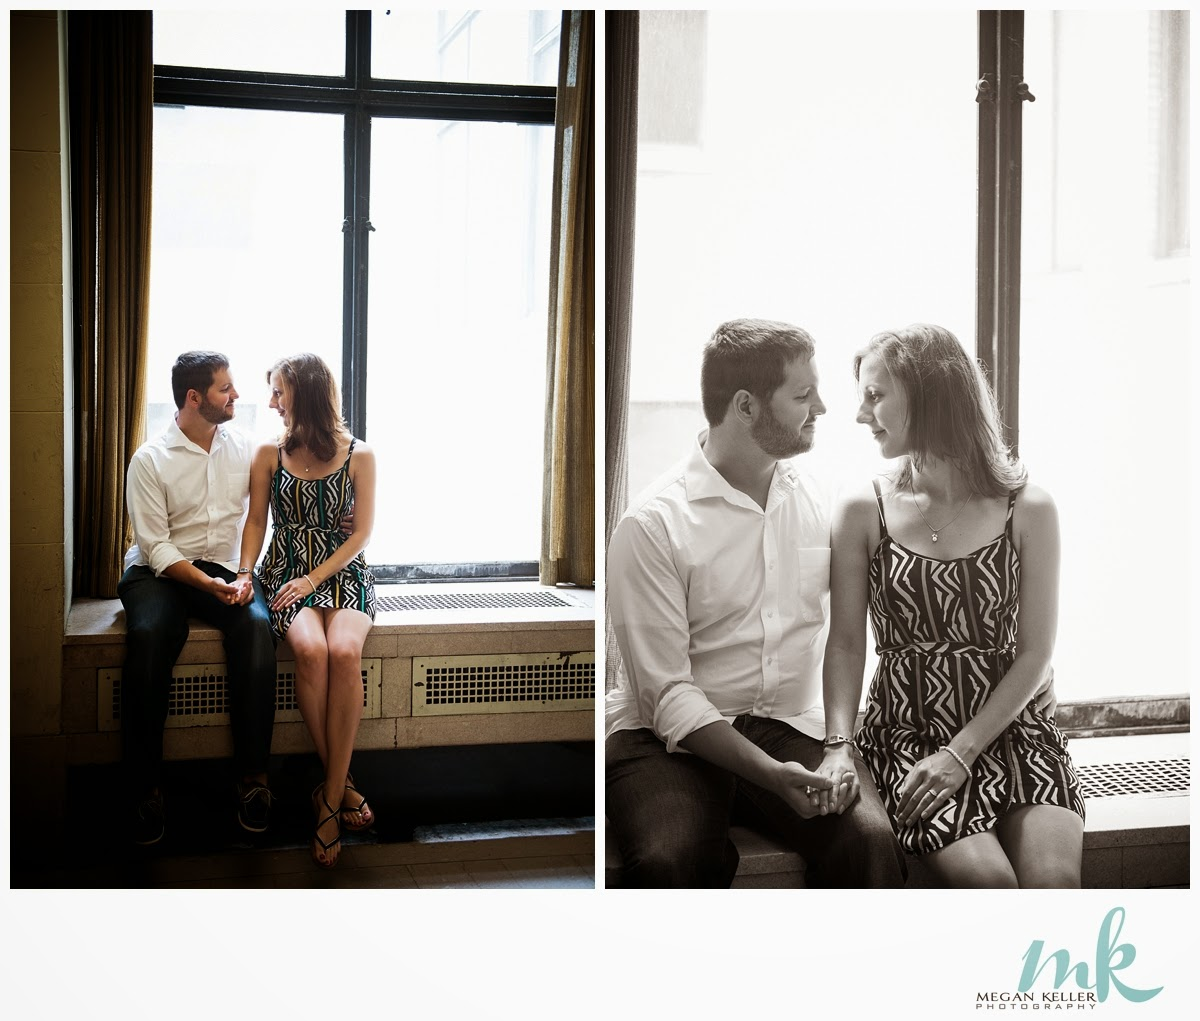 Kelly and Frank Engagement Session Kelly and Frank Engagement Session 2014 08 04 0013